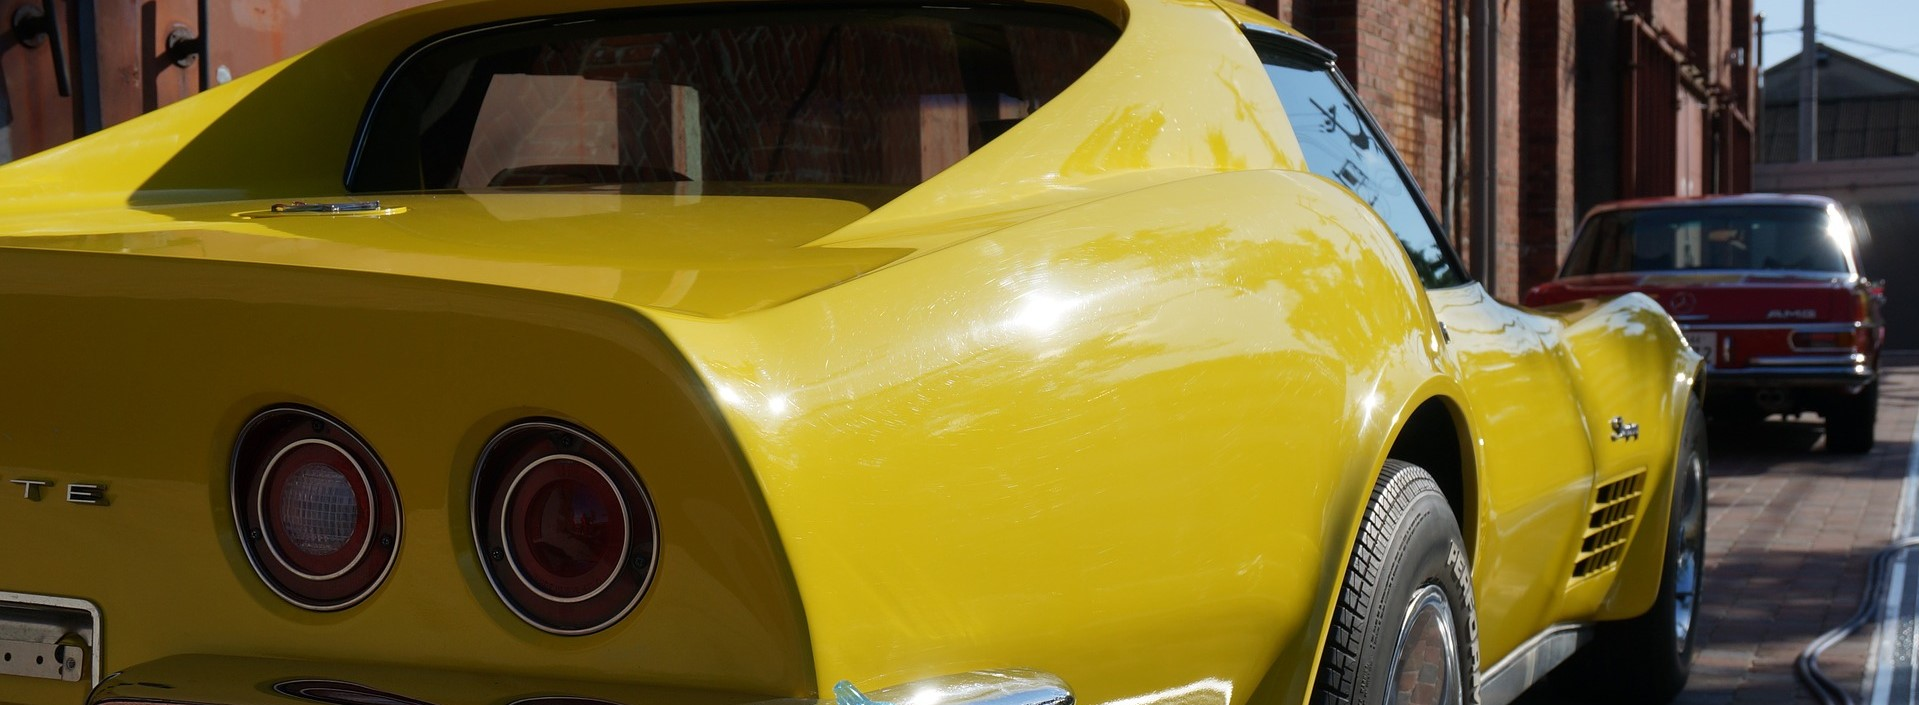 Yellow Vintage Car in Grand Prairie, Texas | Breast Cancer Car Donations